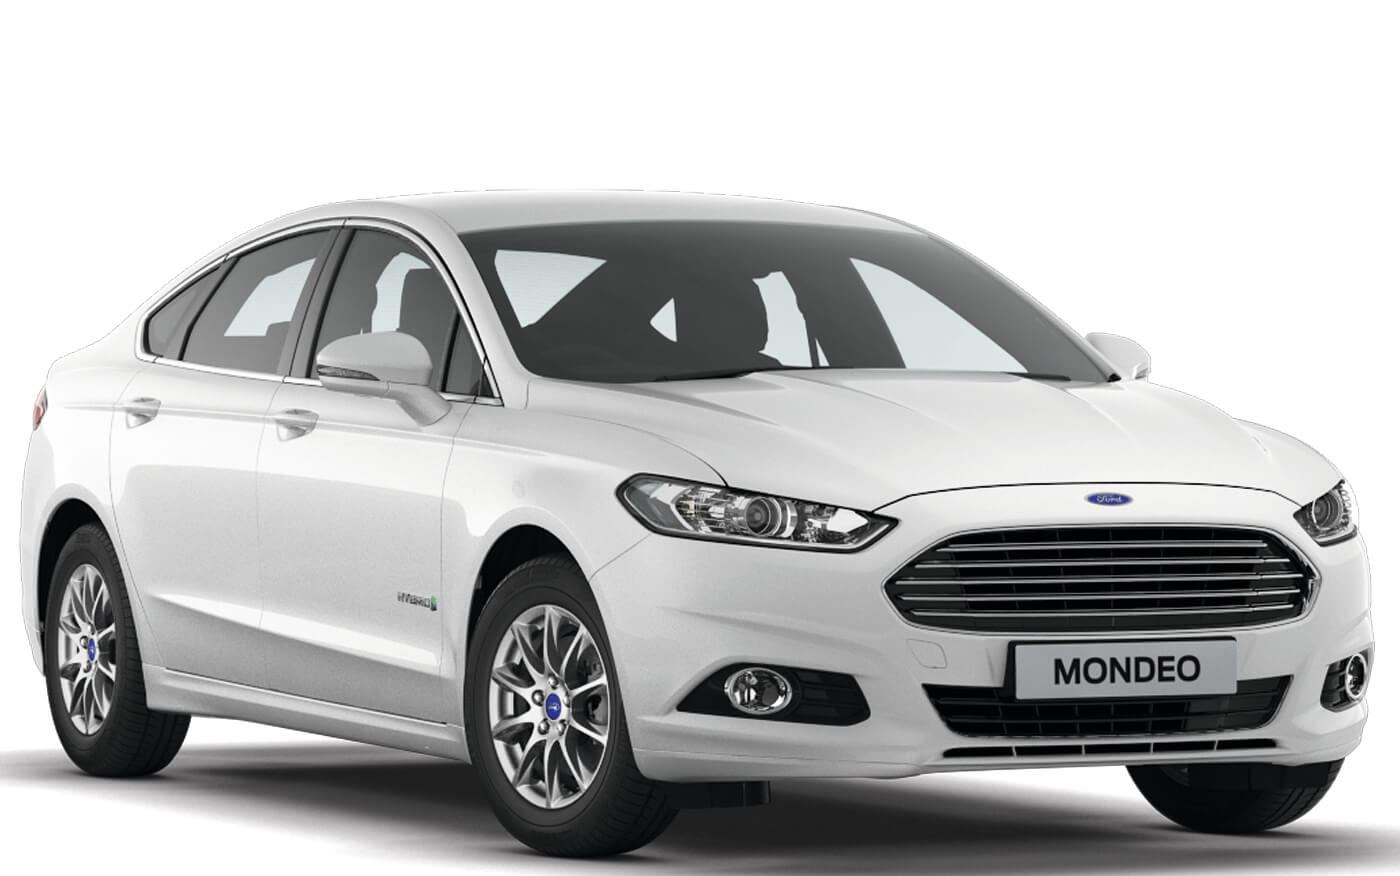 ford mondeo 2 0 tivct titanium edition hev 187ps 4 door auto for sale. Black Bedroom Furniture Sets. Home Design Ideas